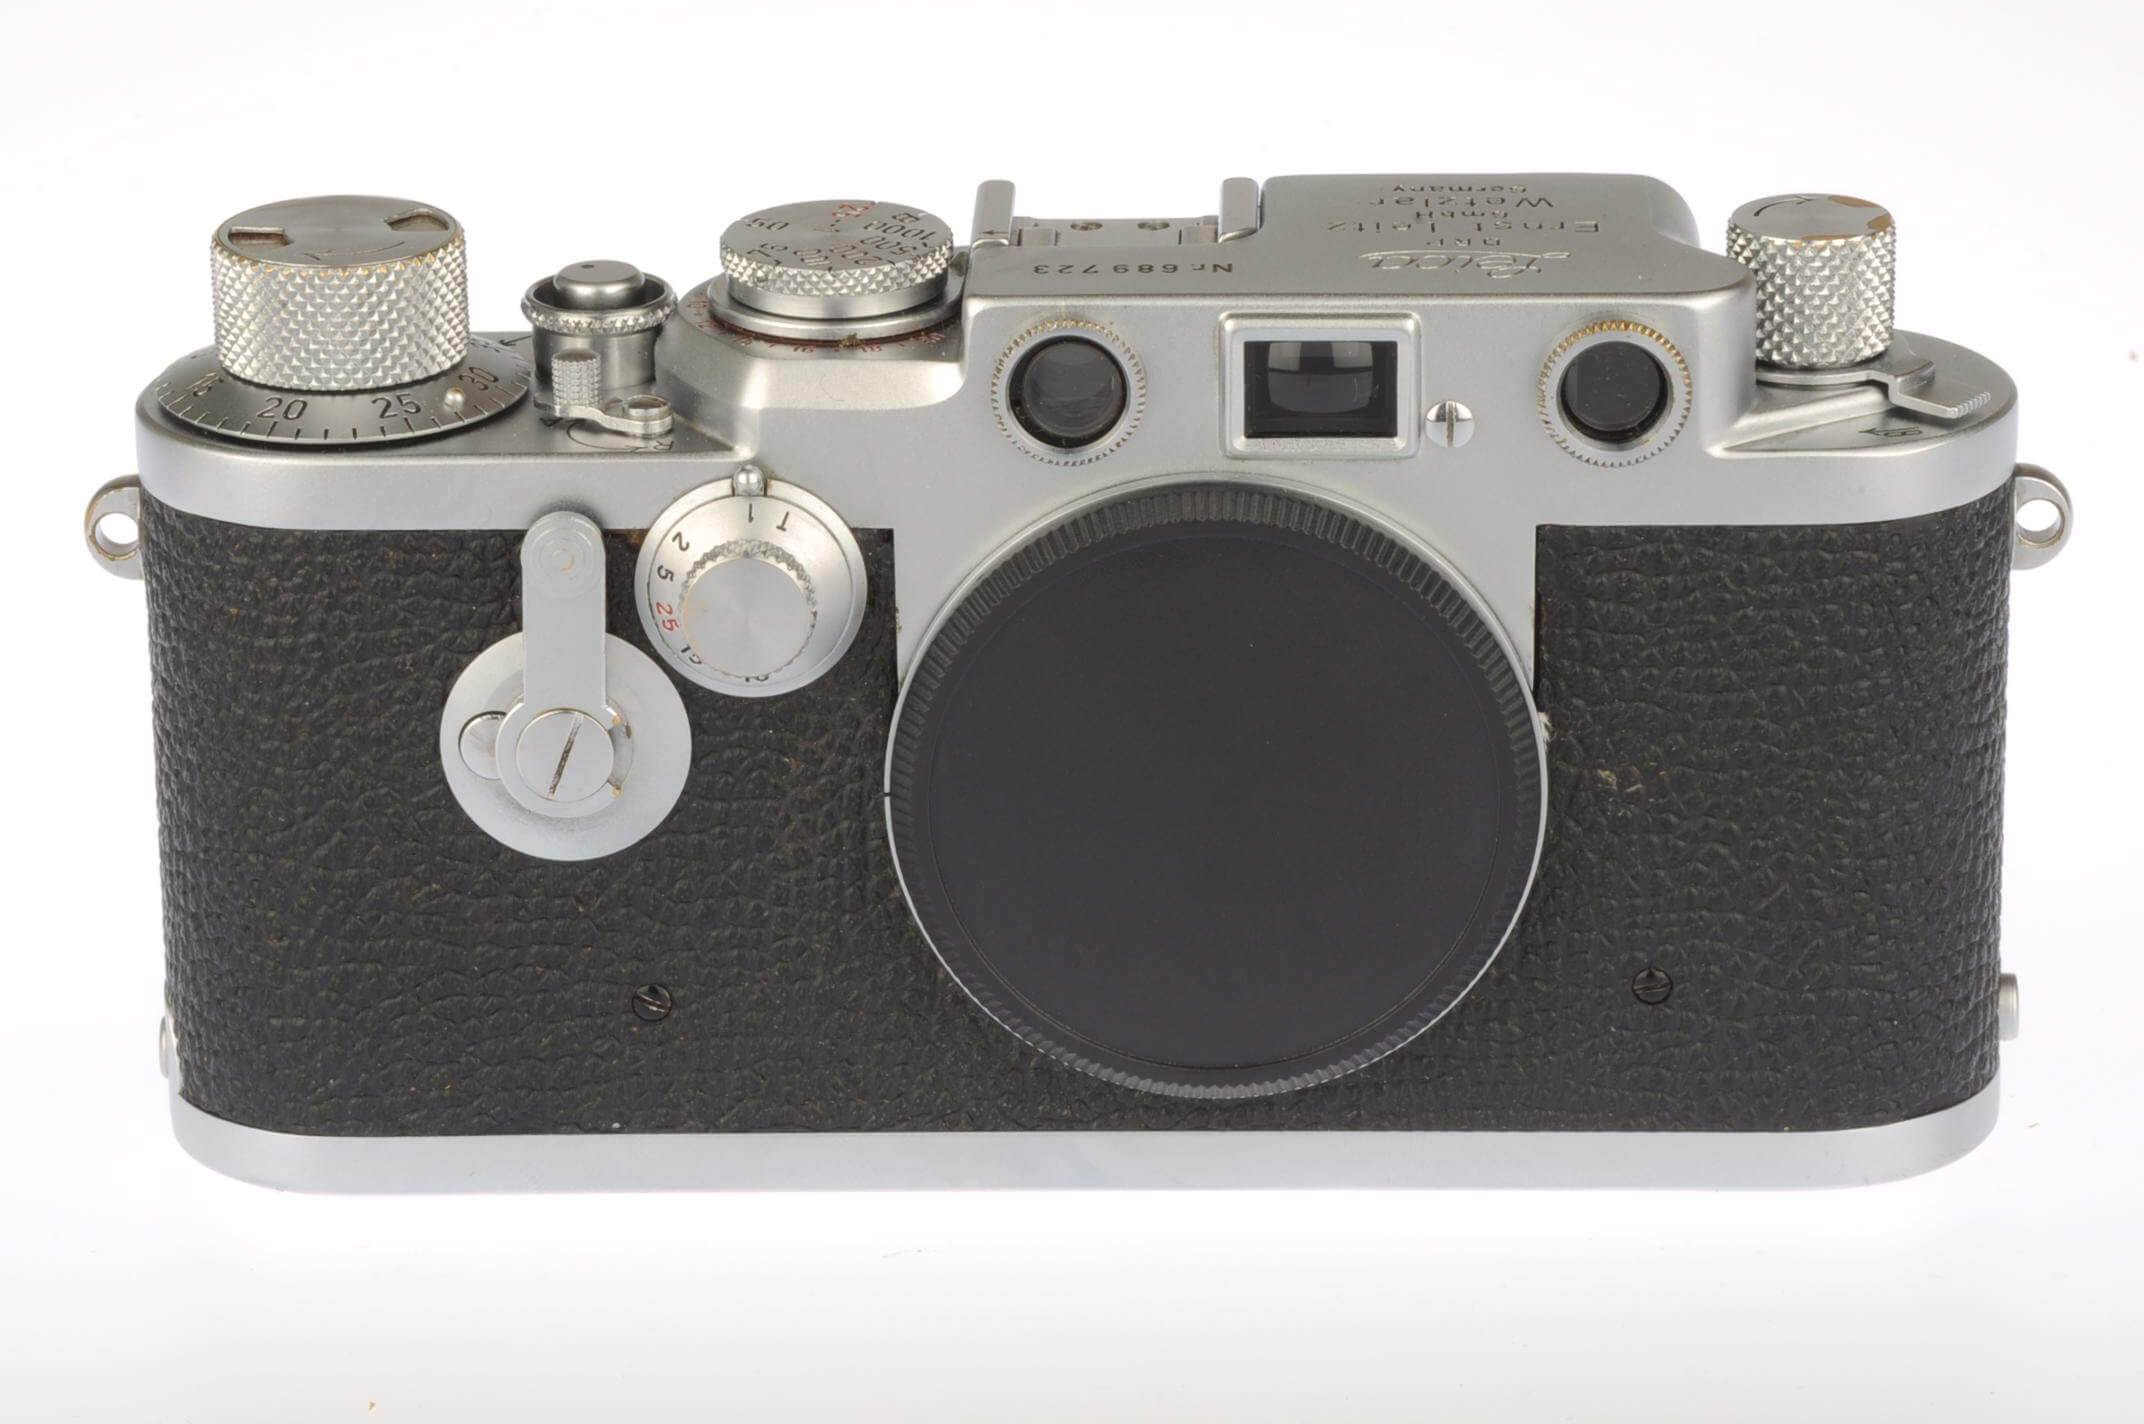 Leica IIIf body, red dial with delayed action, fully serviced